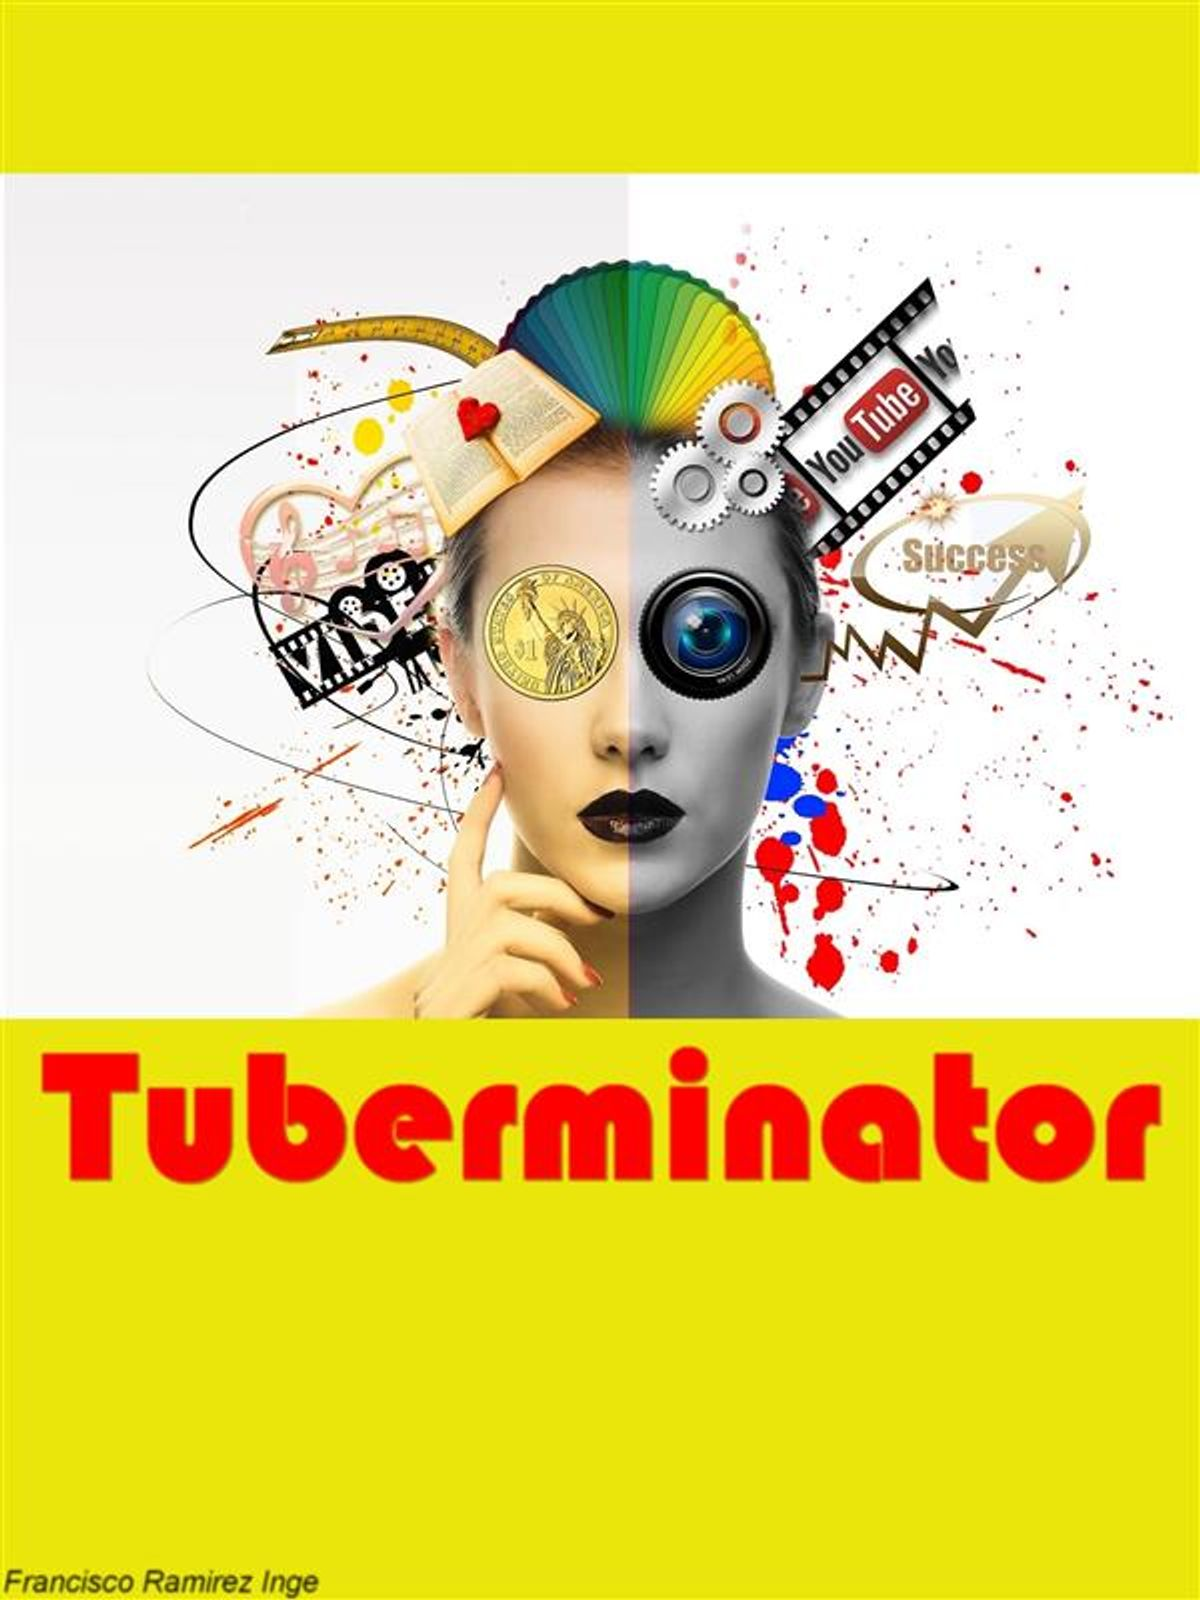 Tuberminator,  First page video ranking with free tools and resources